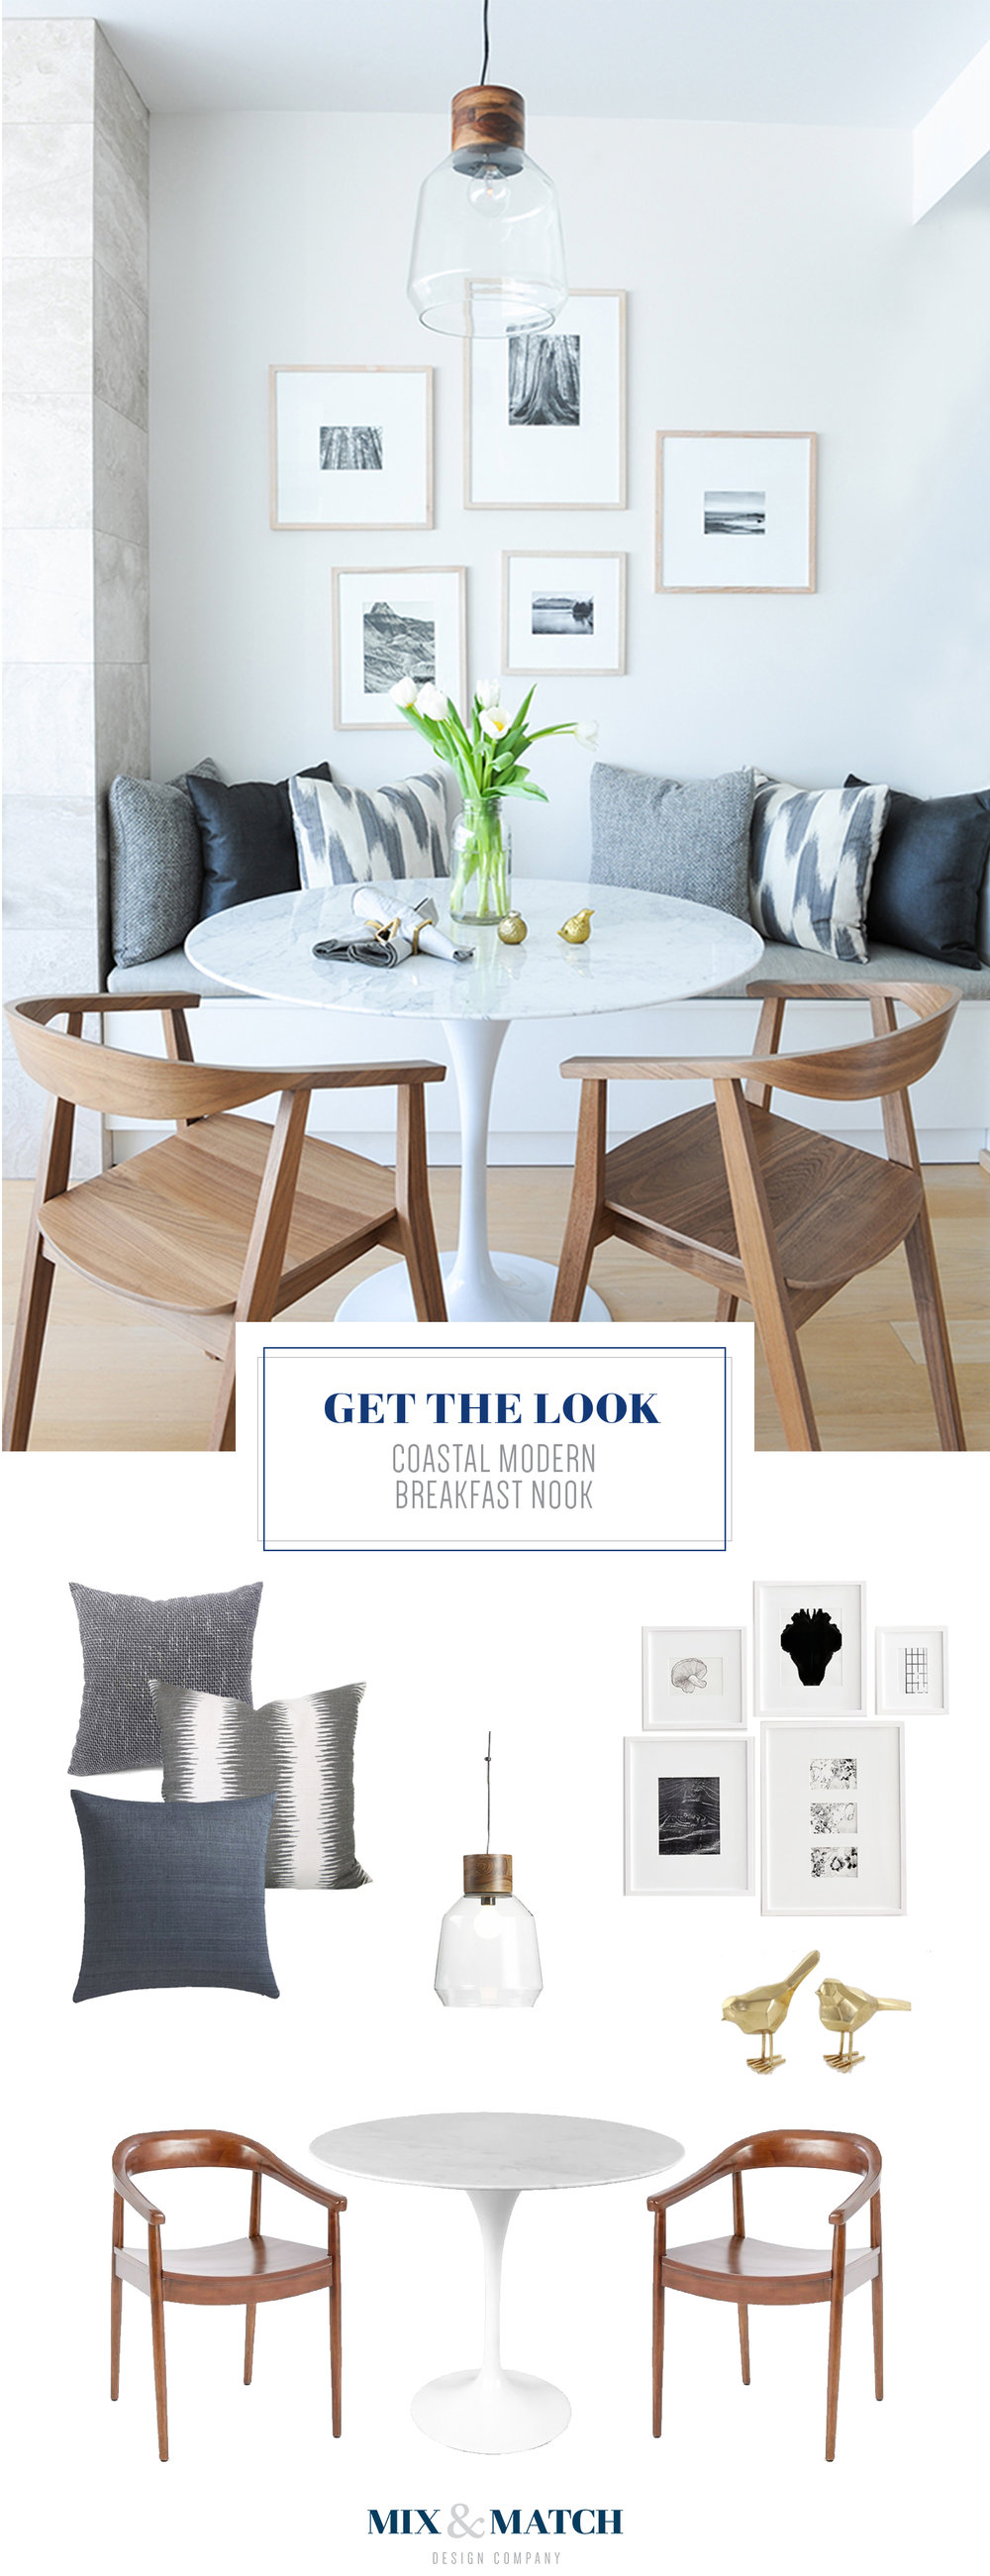 Get the look of this coastal modern breakfast nook with its round tulip table (Saarinen dining table) and wood-framed black and white photos.